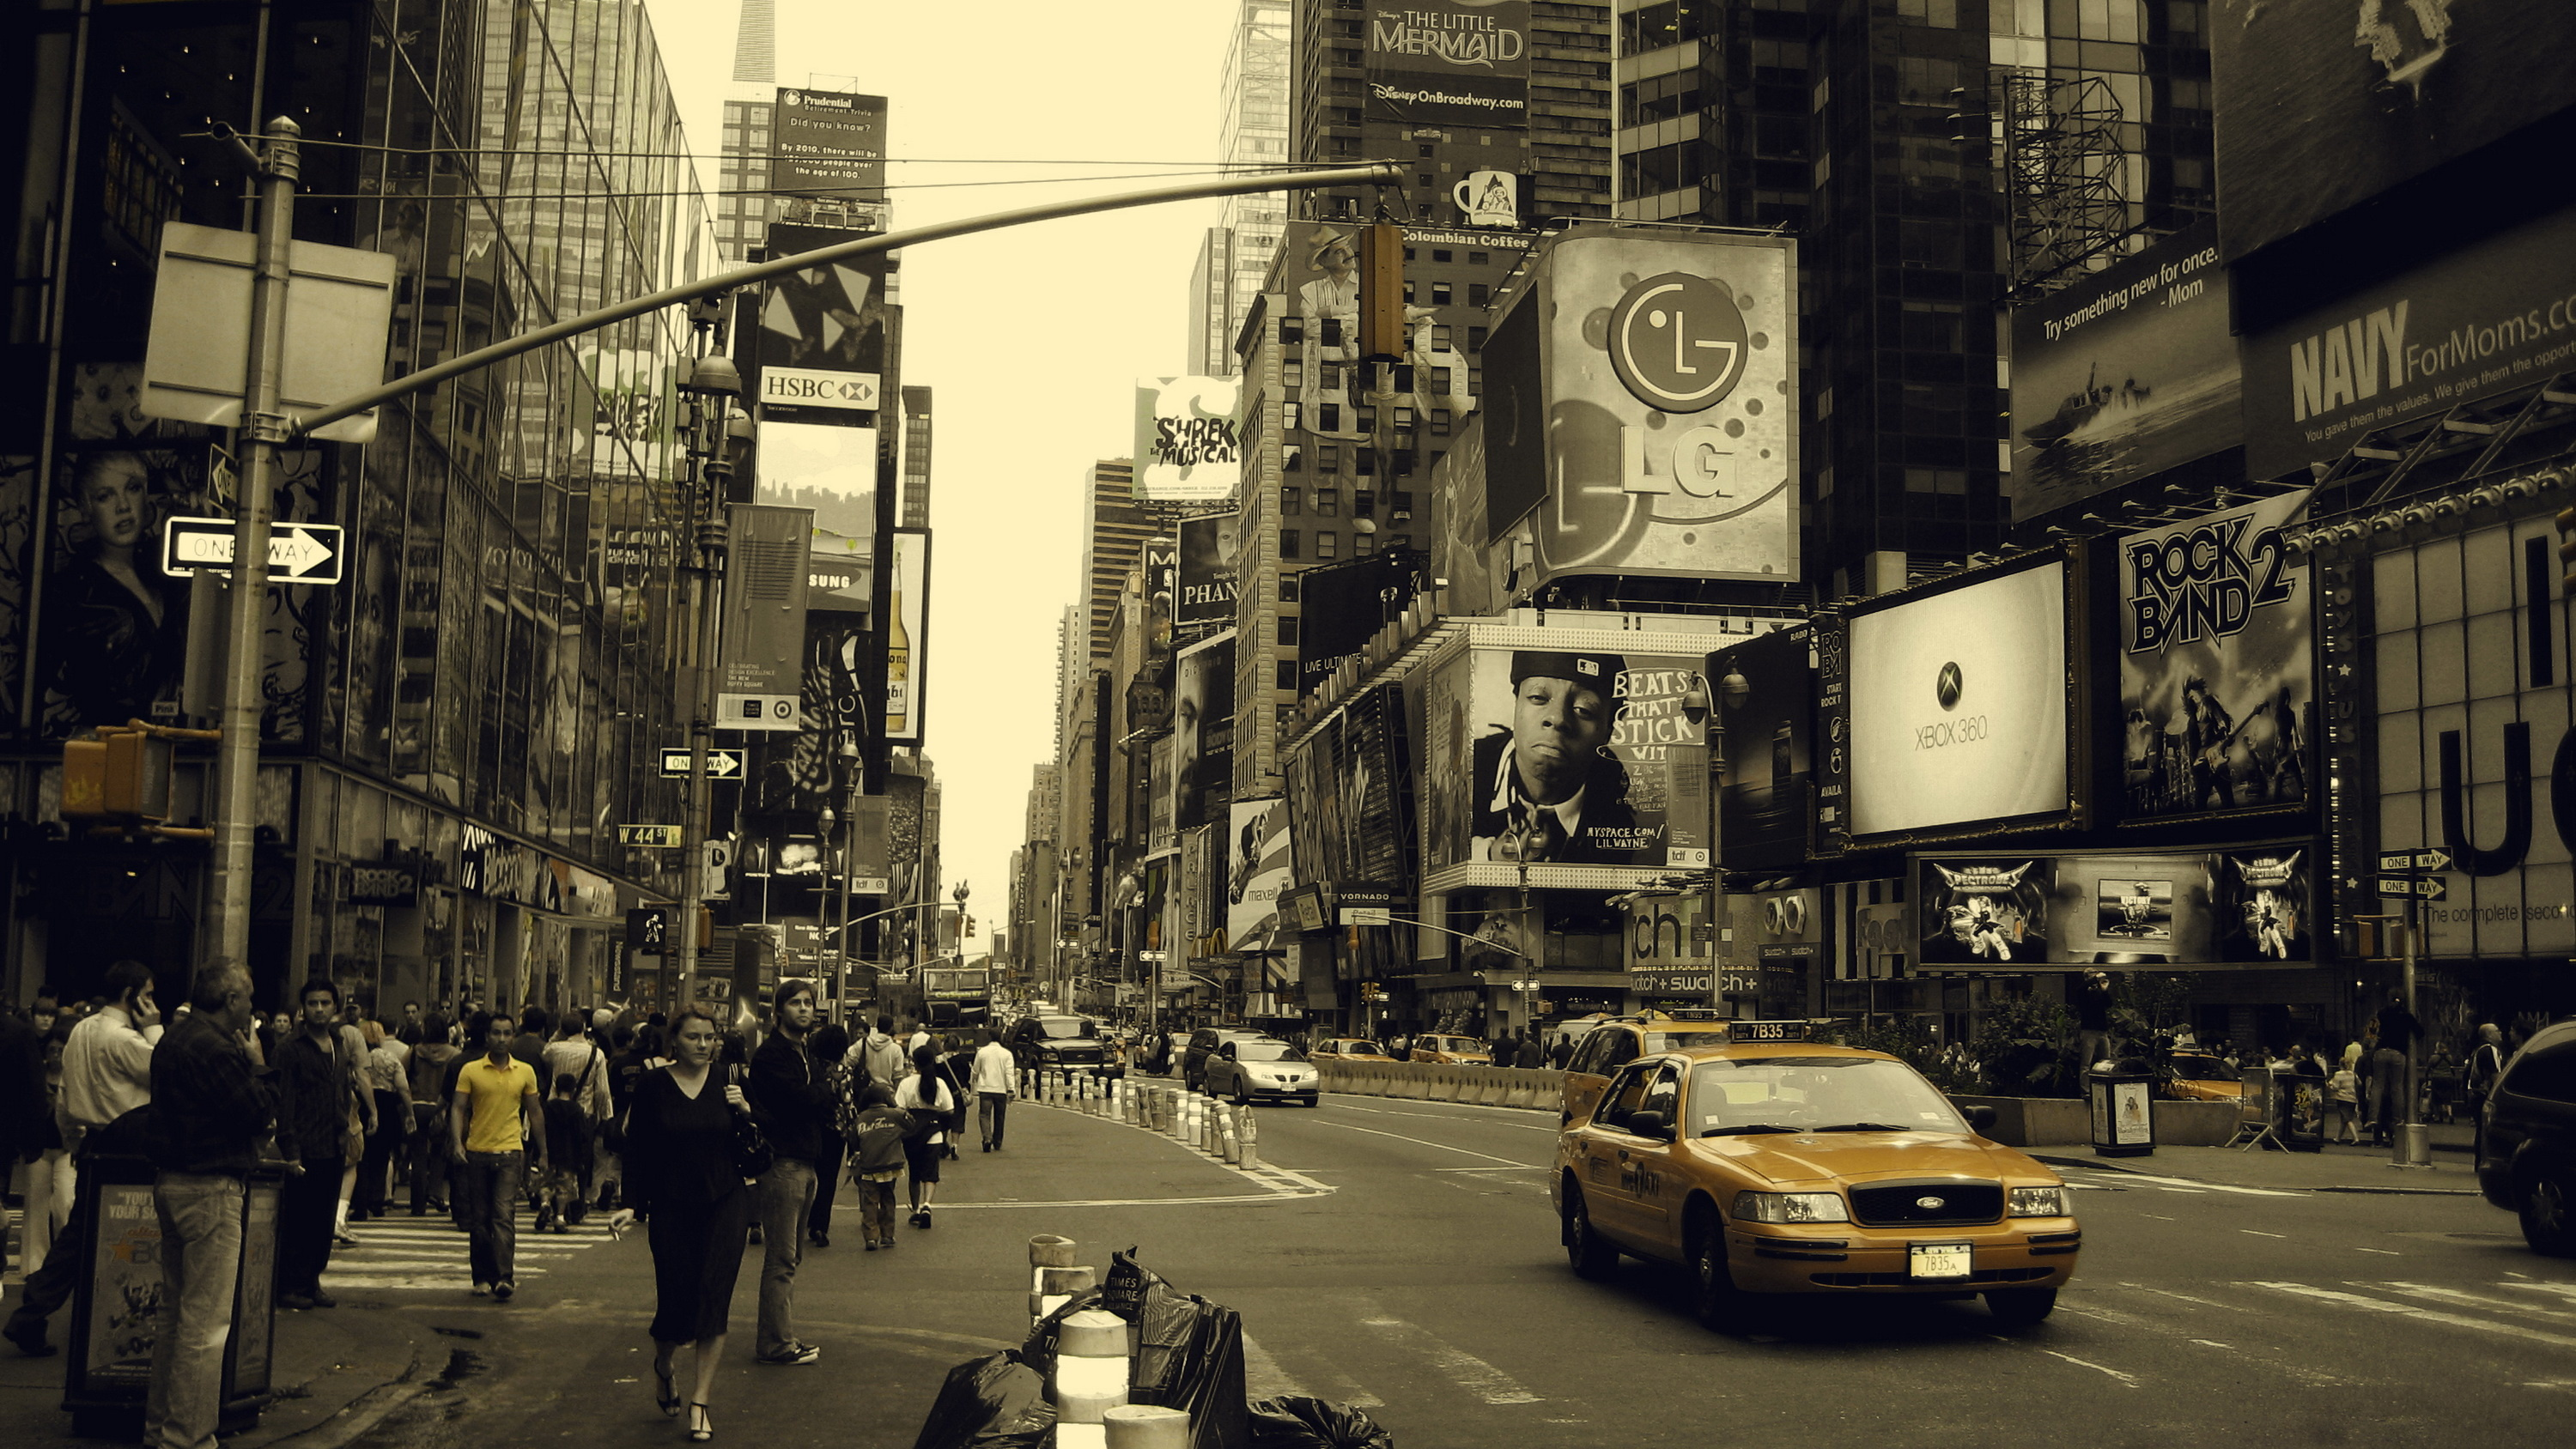 desktop wallpaper pictures of new york   wwwwallpapers in hdcom 3000x1688